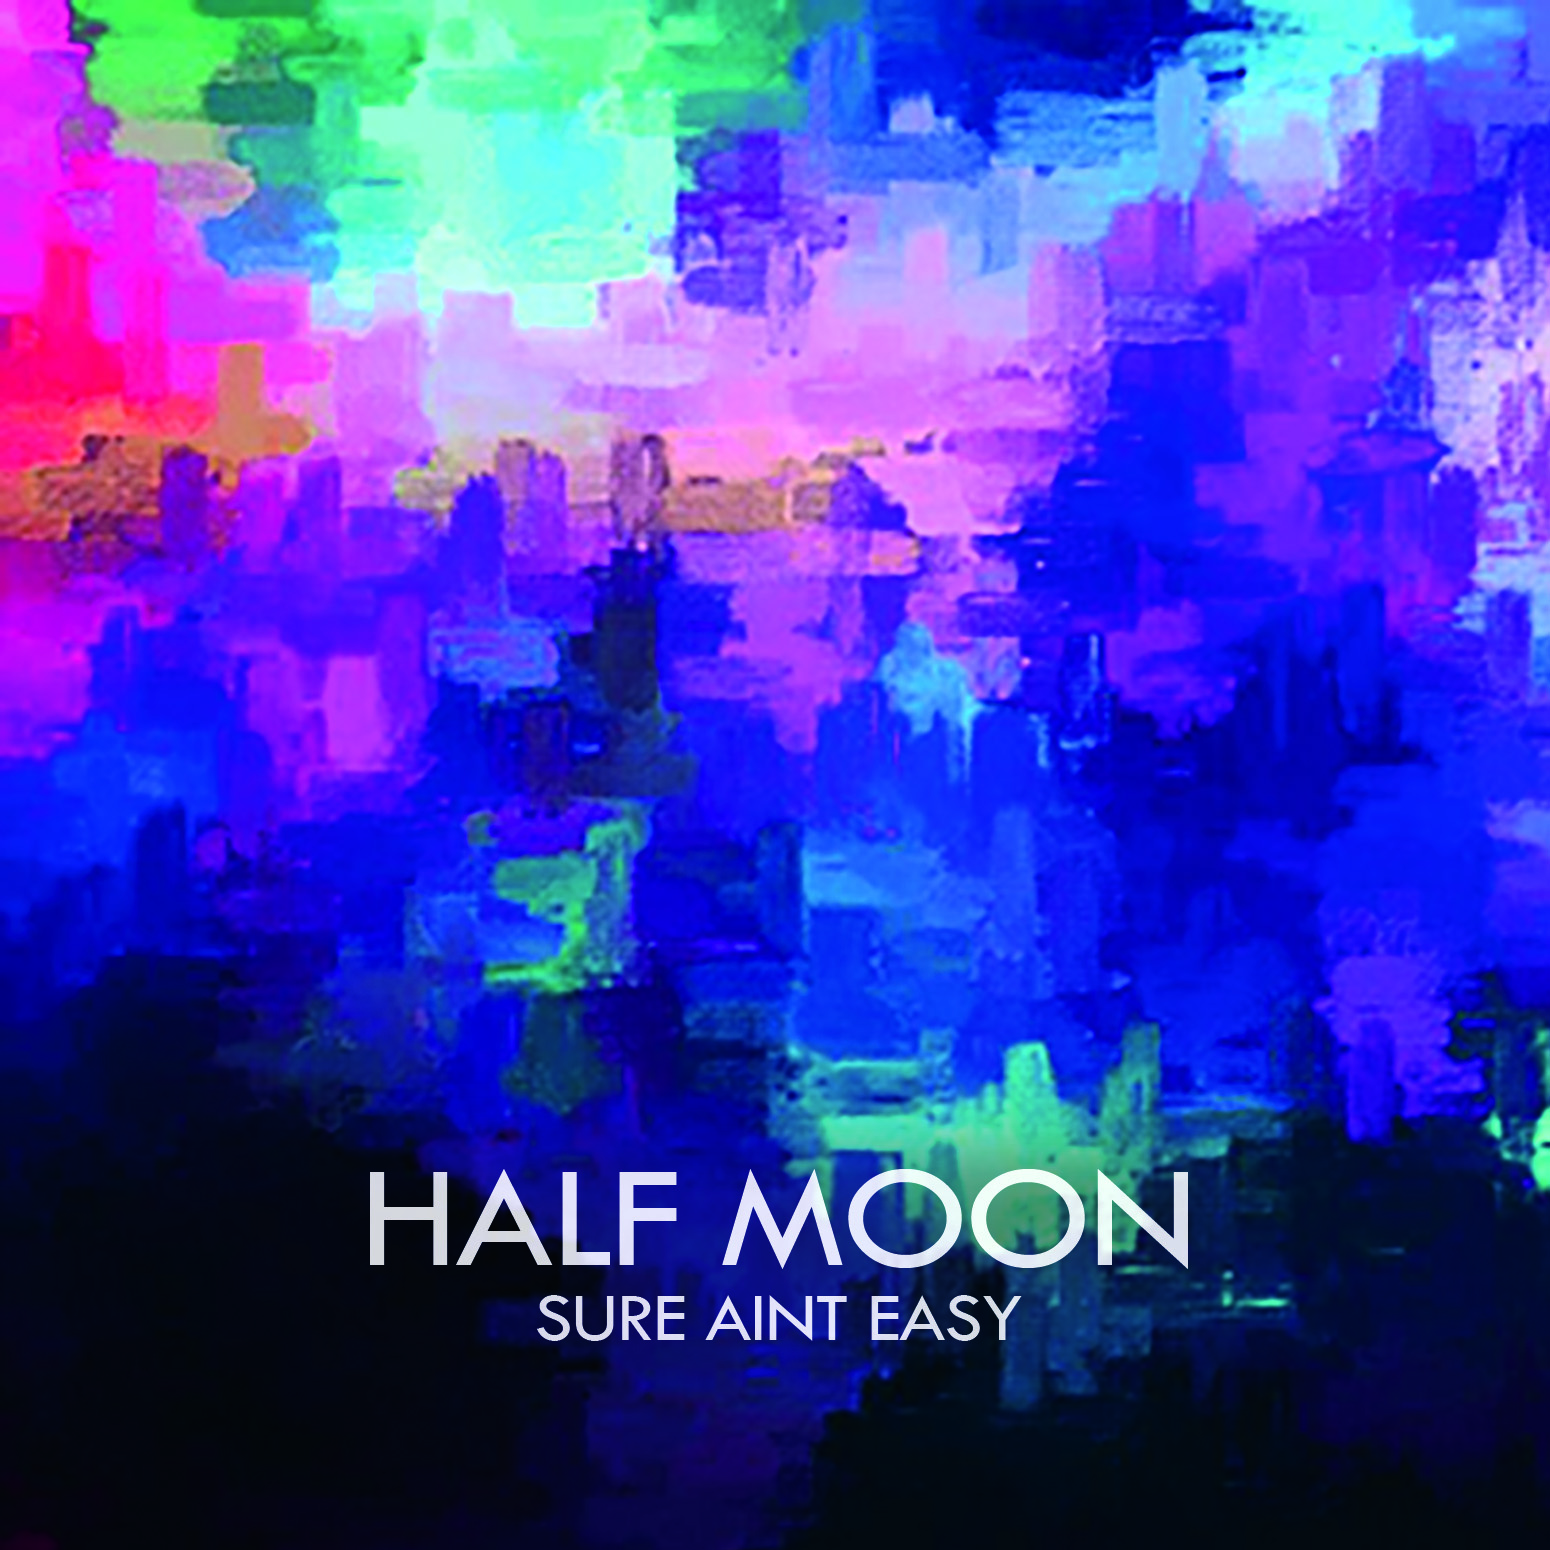 - Half Moon released their debut album 'Sure Ain't Easy' on December 23, 2017. The album is the culmination of more than a decade of music-making for the core members of the band, and demonstrates a diverse musical palate backed by creative, expressive players. You can listen to their first single 'He Will' below.